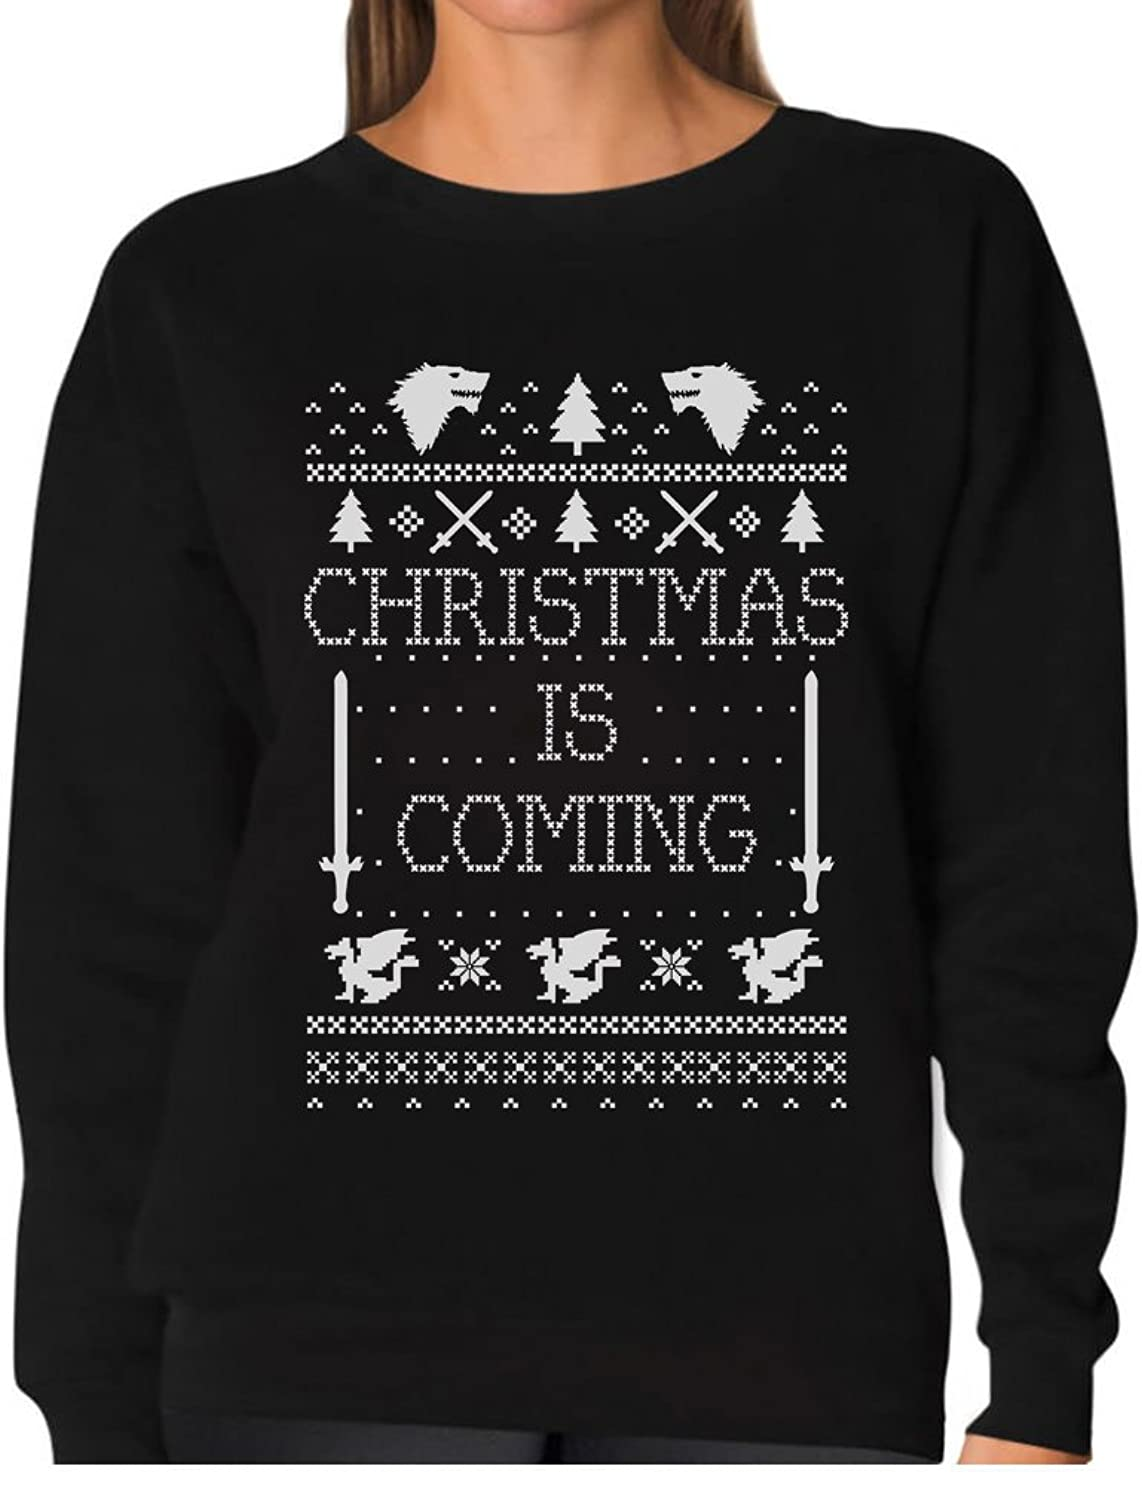 Christmas Is Coming Ugly Christmas Sweater Sweatshirt